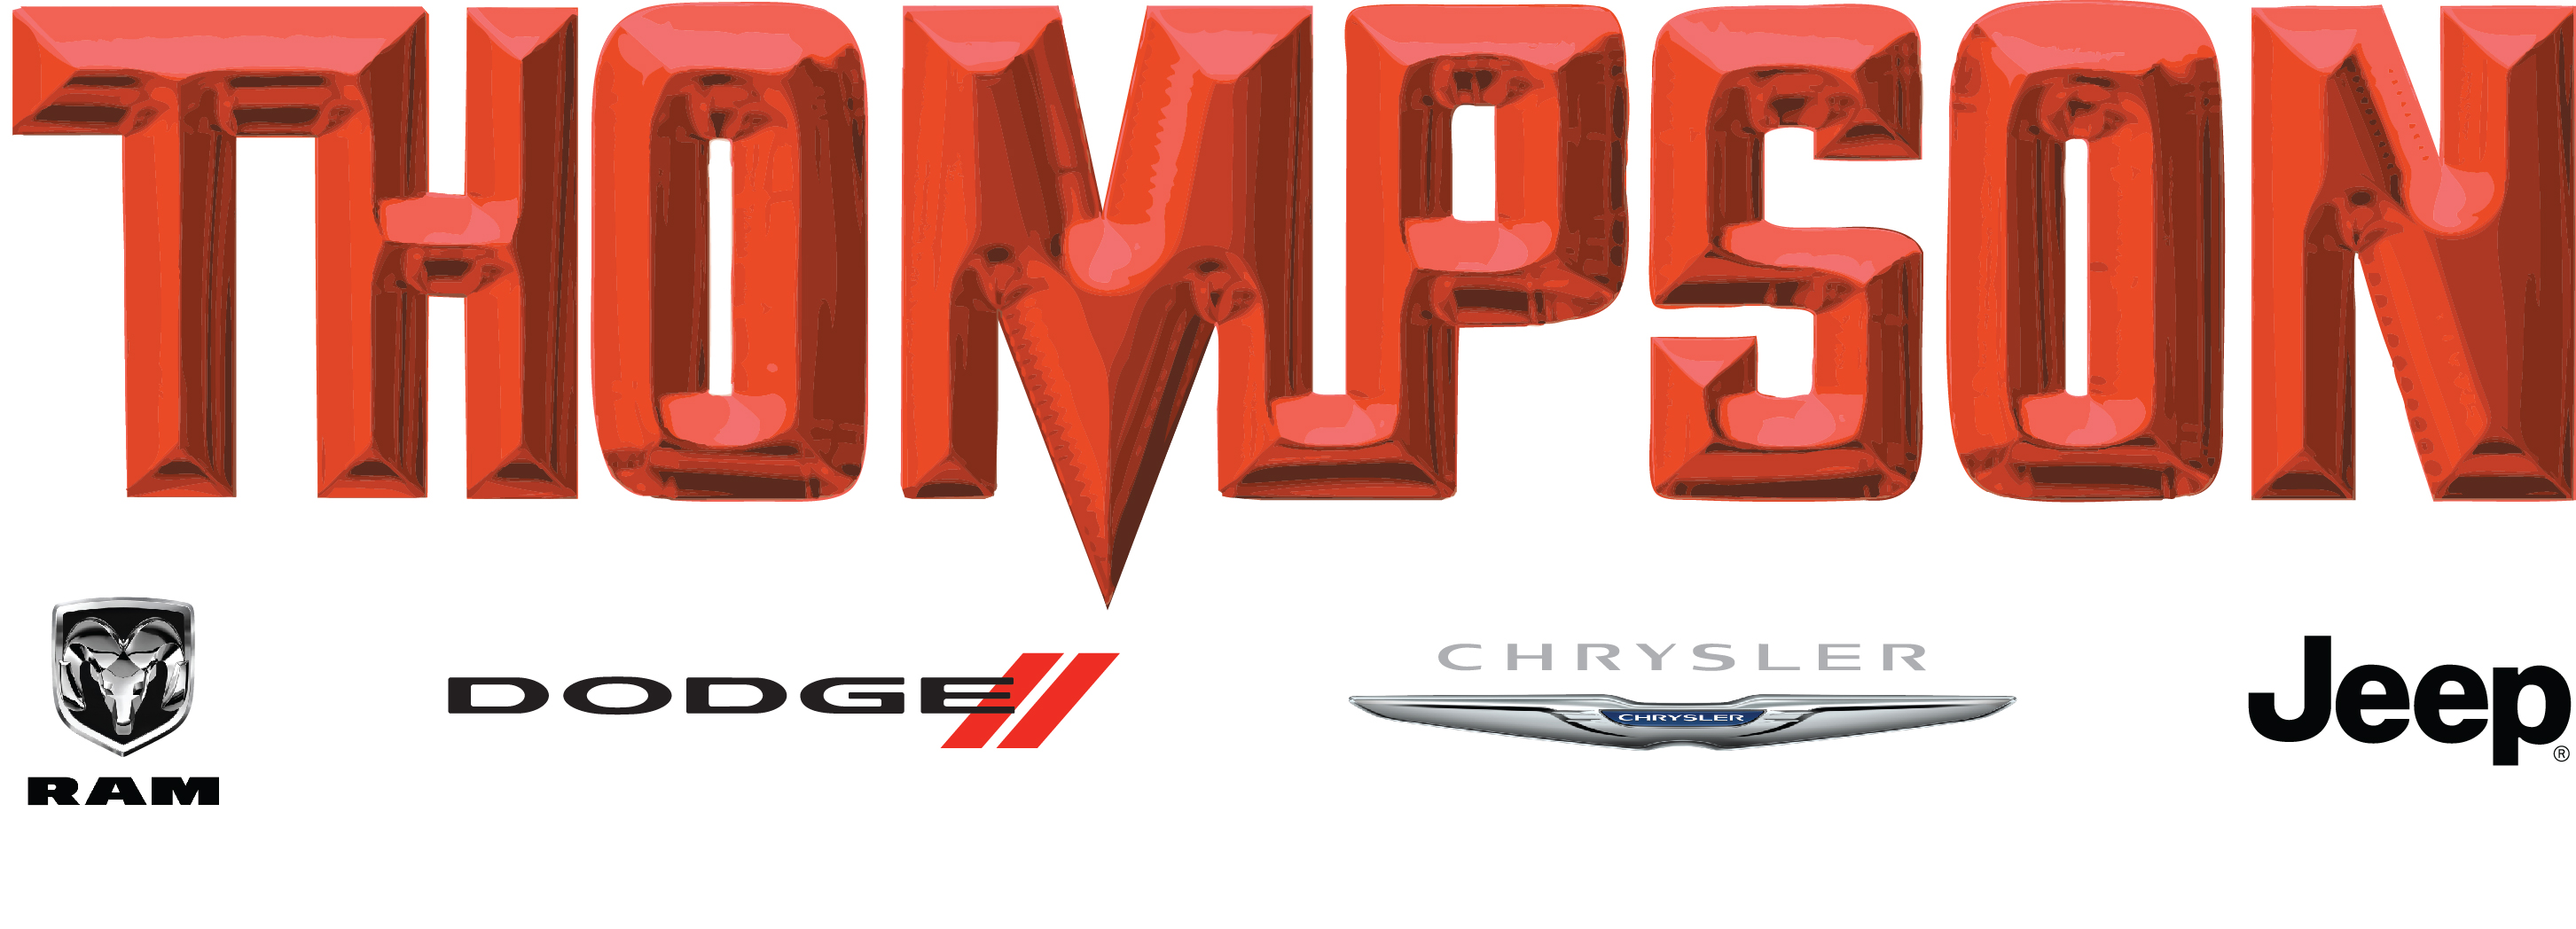 Good Thompson Chrysler Jeep Dodge RAM